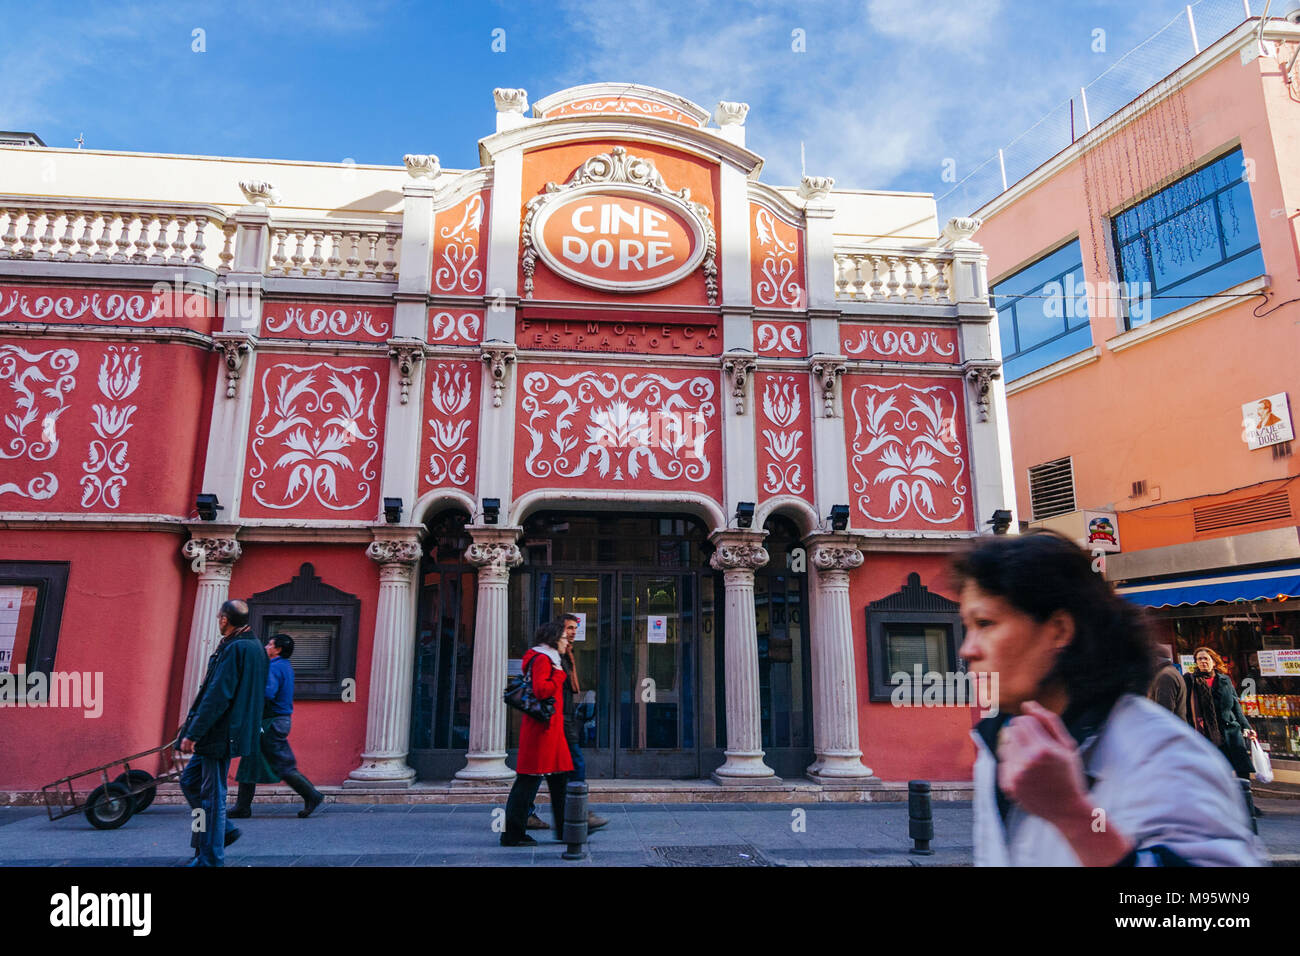 Madrid, Spain : People walk past cine Doré, the cinema of the Spanish Cinemathèque (Filmoteca Española) and featured by Pedro Almodóvar in Talk to Her - Stock Image